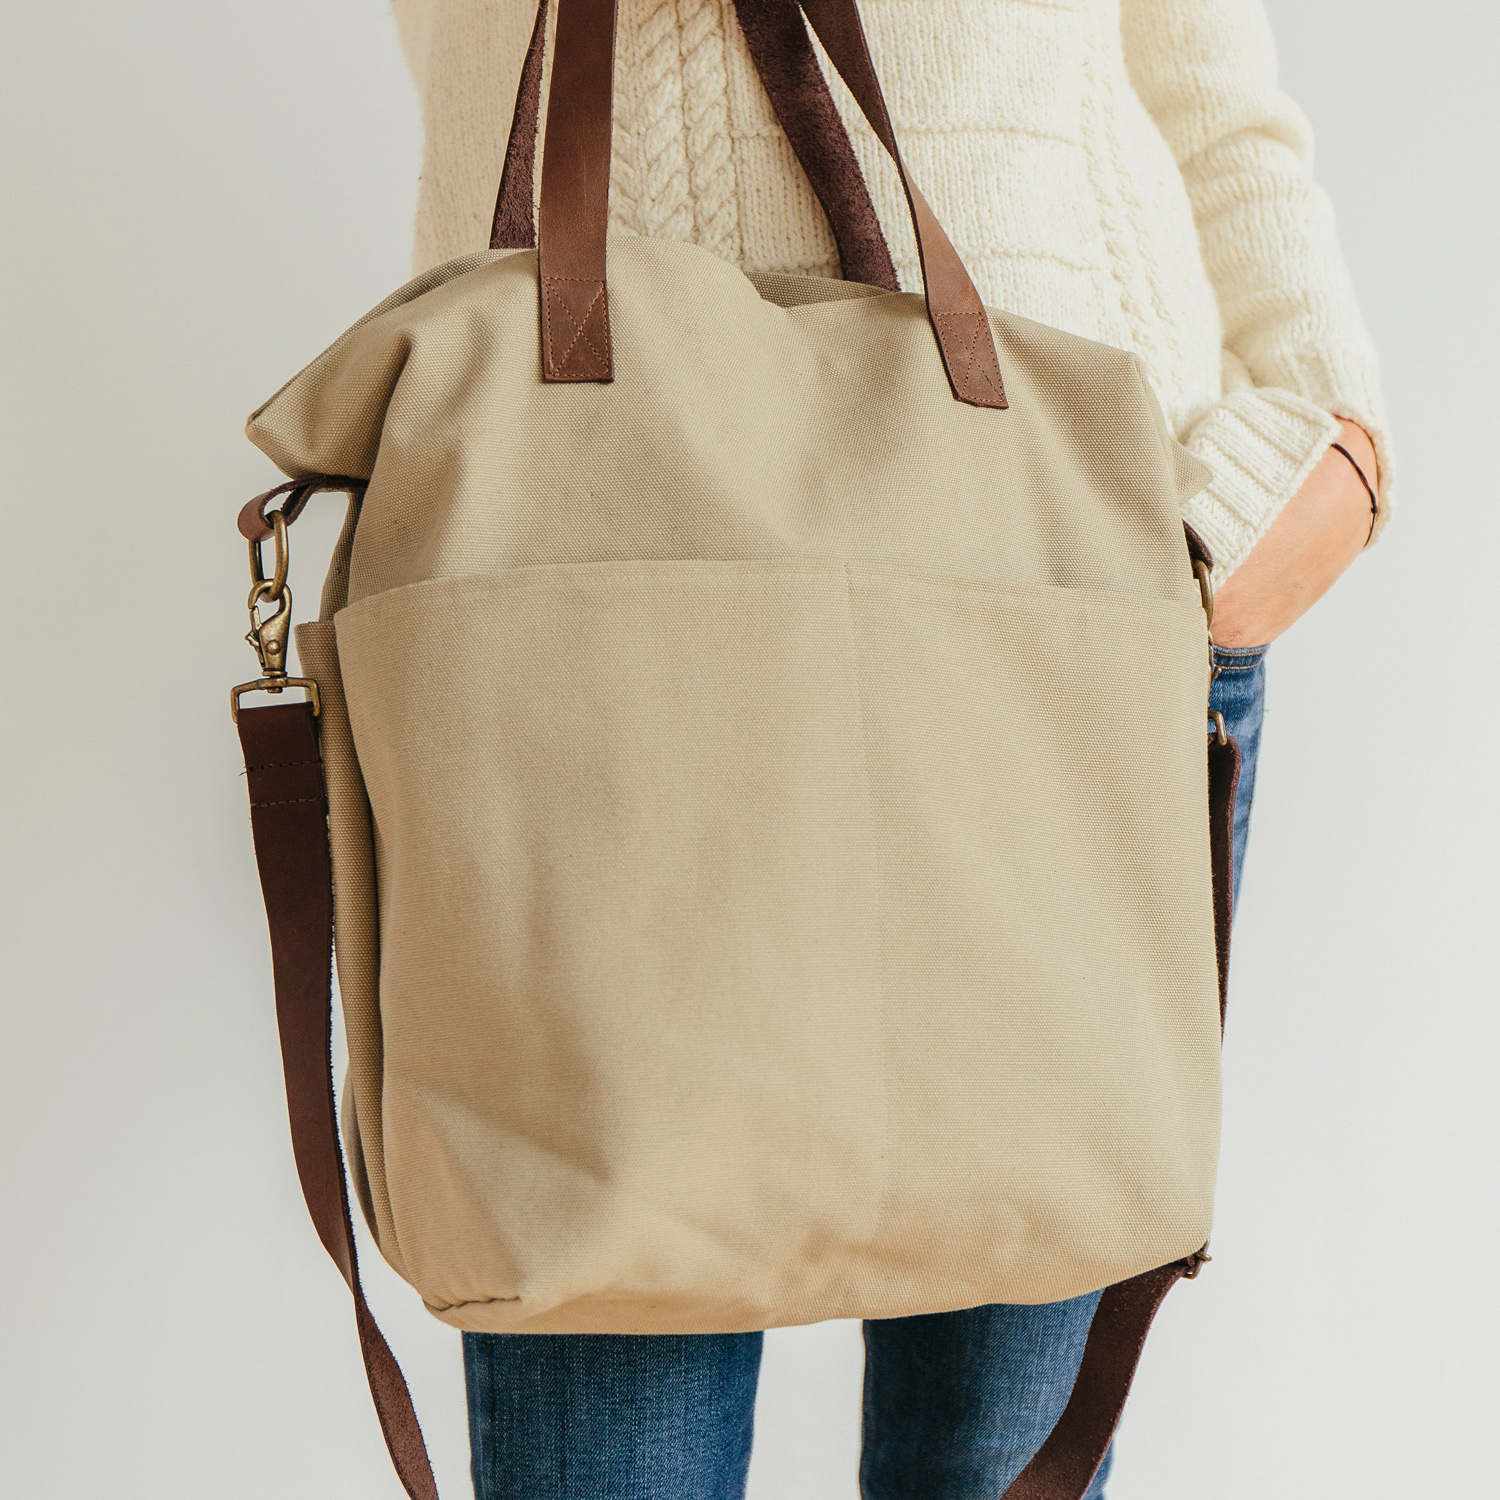 WAXED CANVAS CROSSBODY TOTE - Twig and Horn